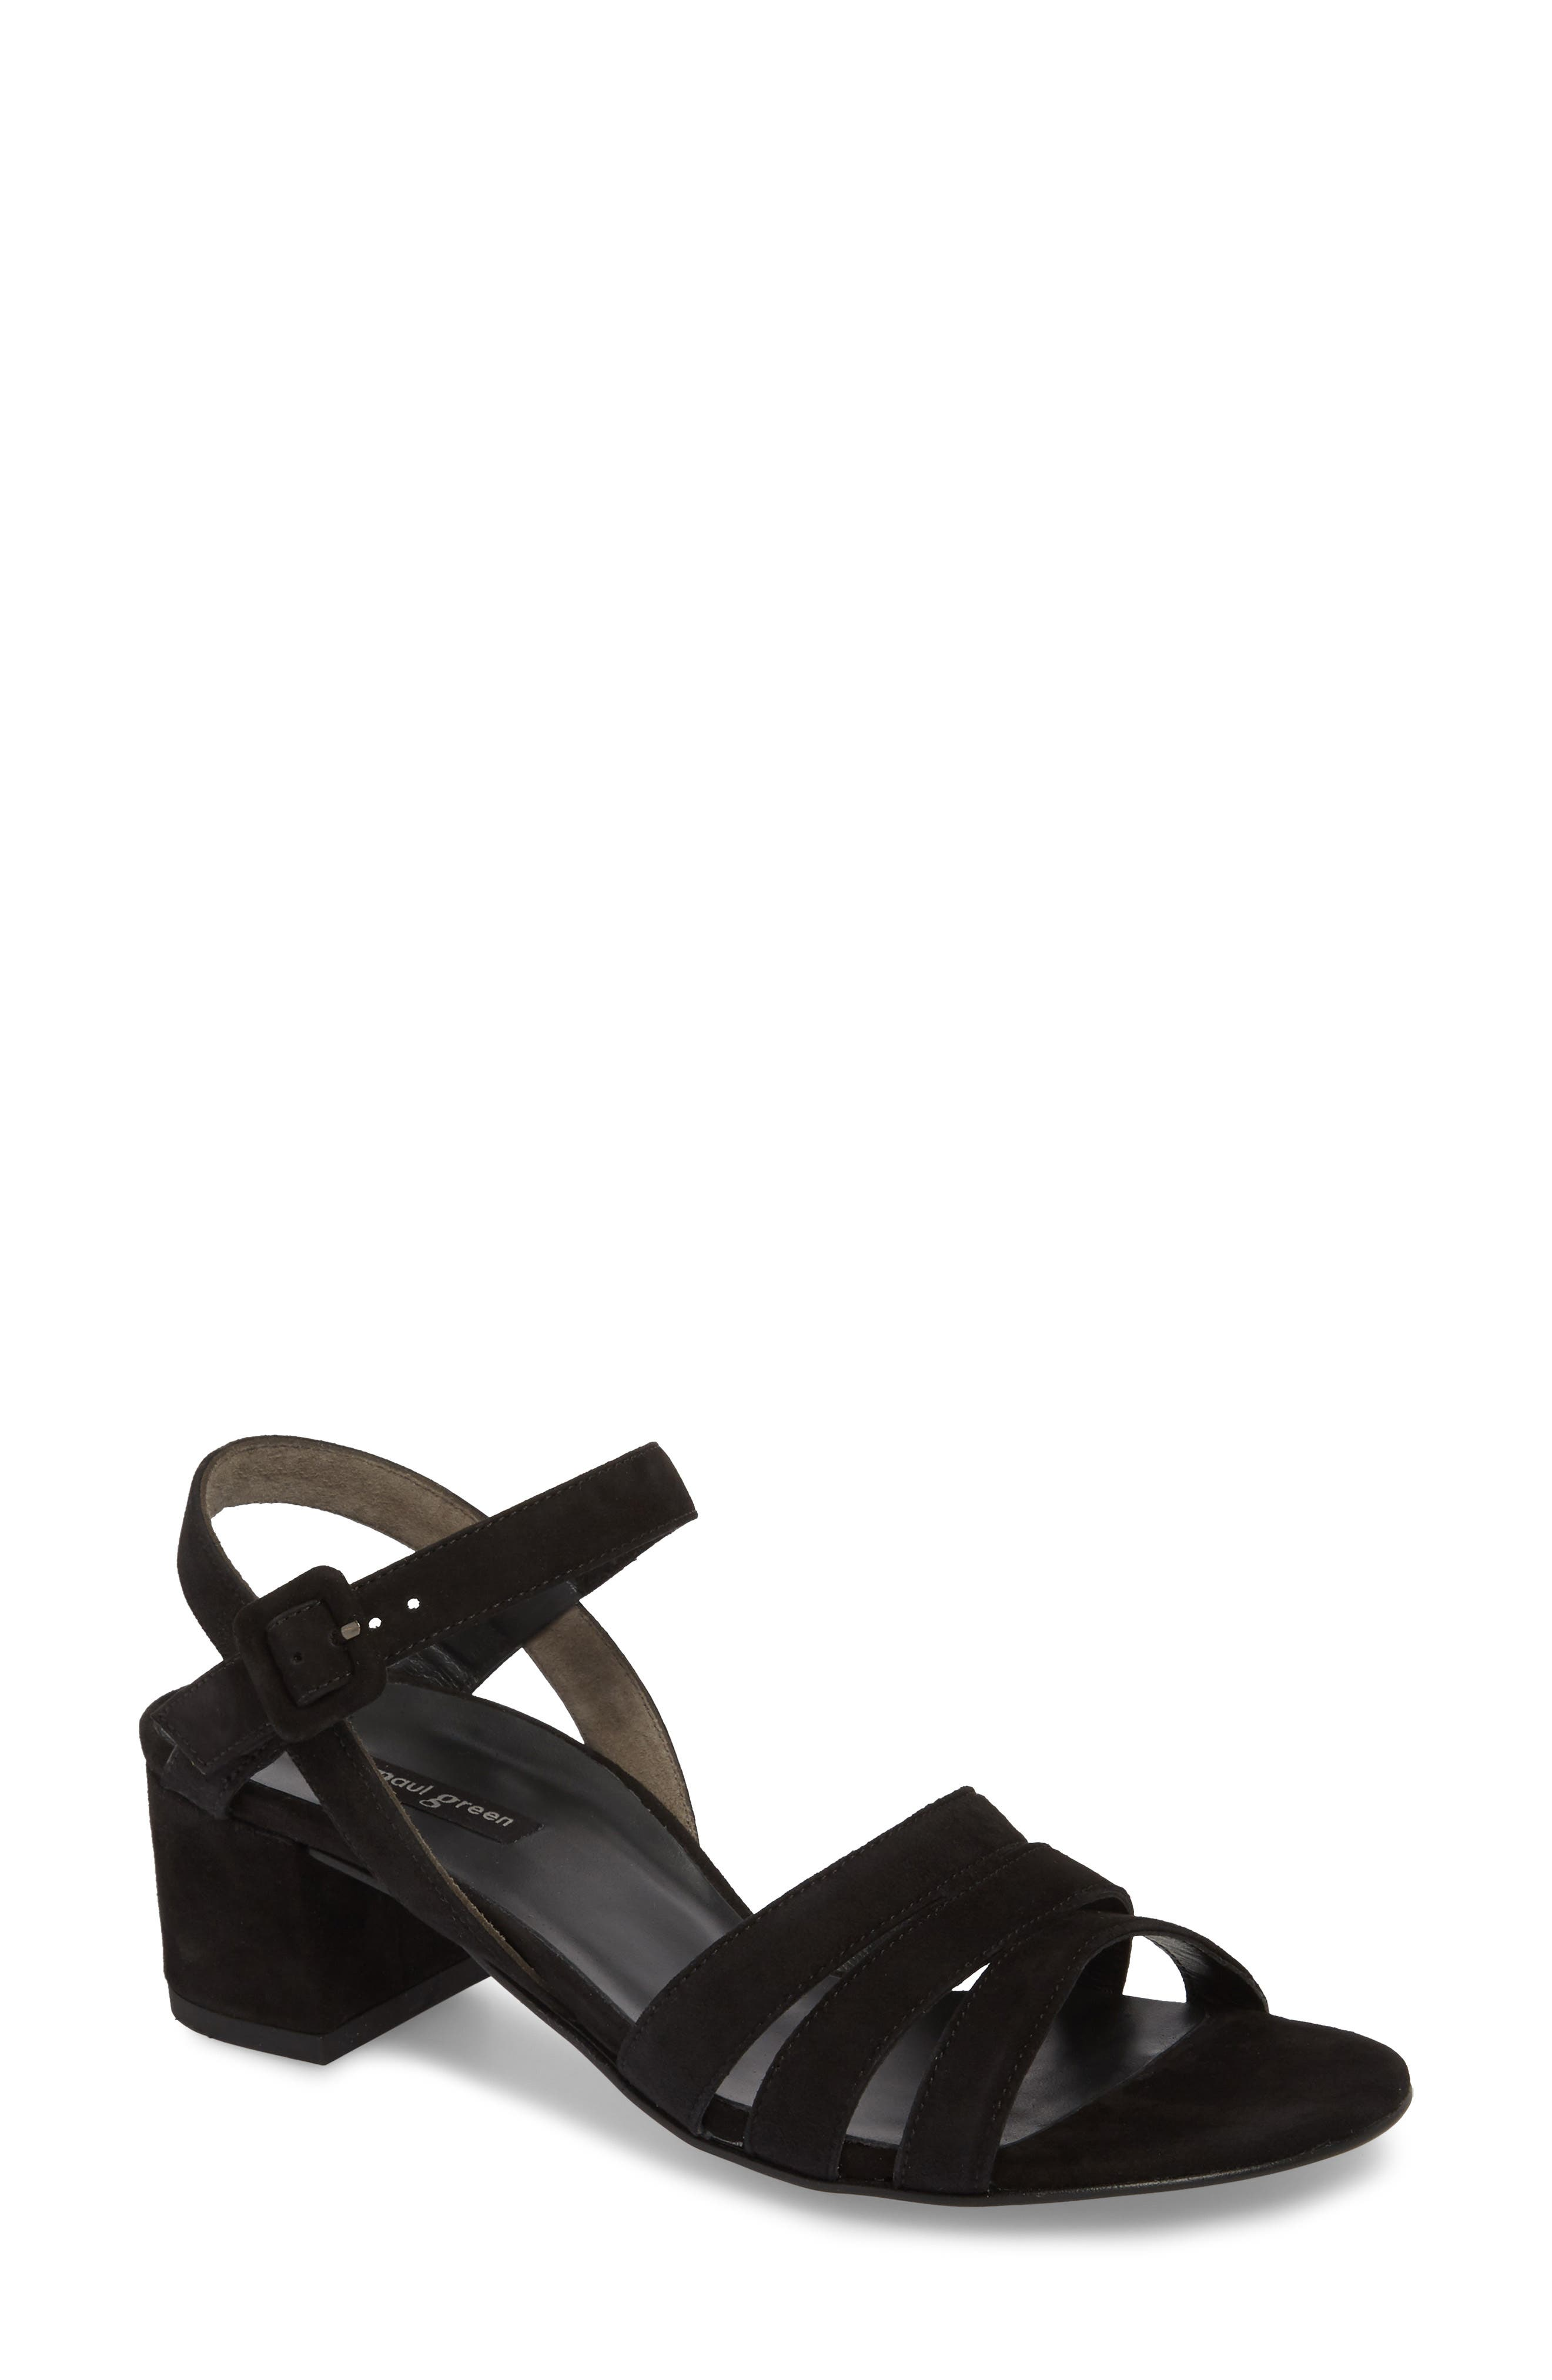 Rosemary Sandal,                         Main,                         color, 002